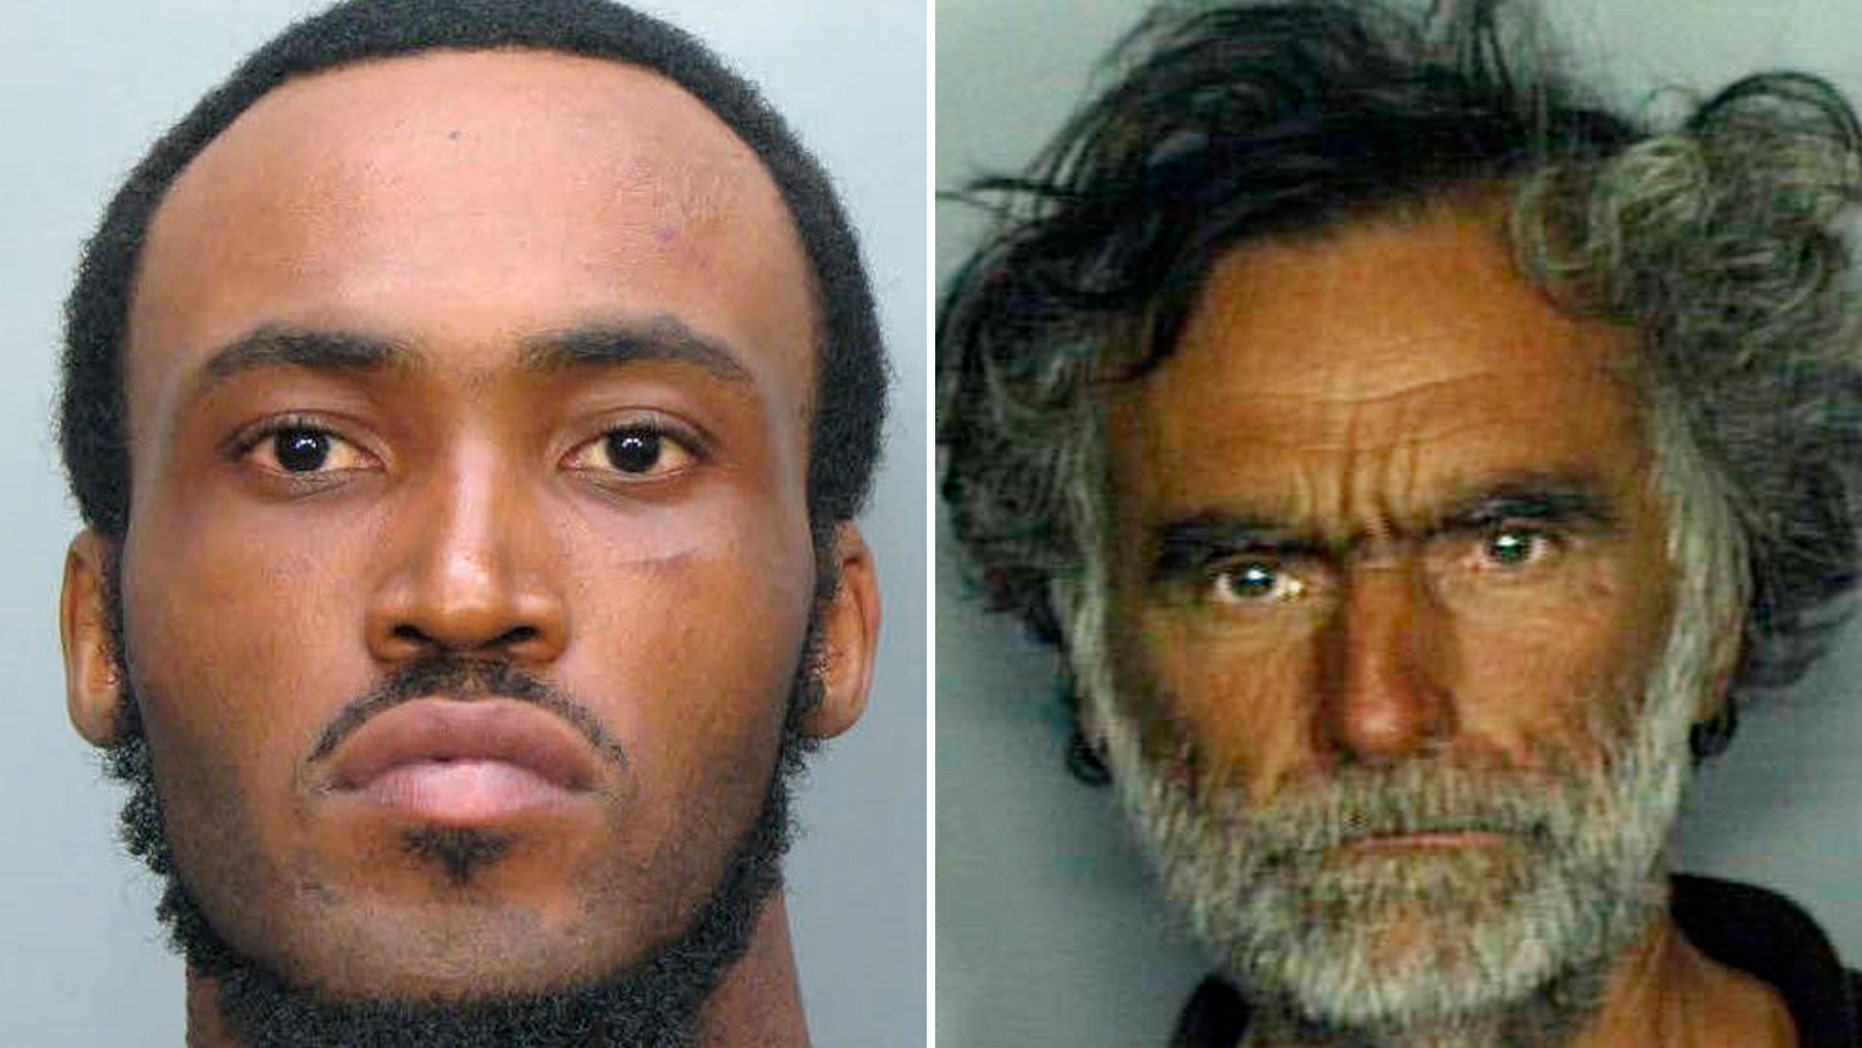 Miami-Dade police shot and killed Rudy Eugene, 31, left, as he ate the face of Ronald Poppo, 65, on May 26, 2012.